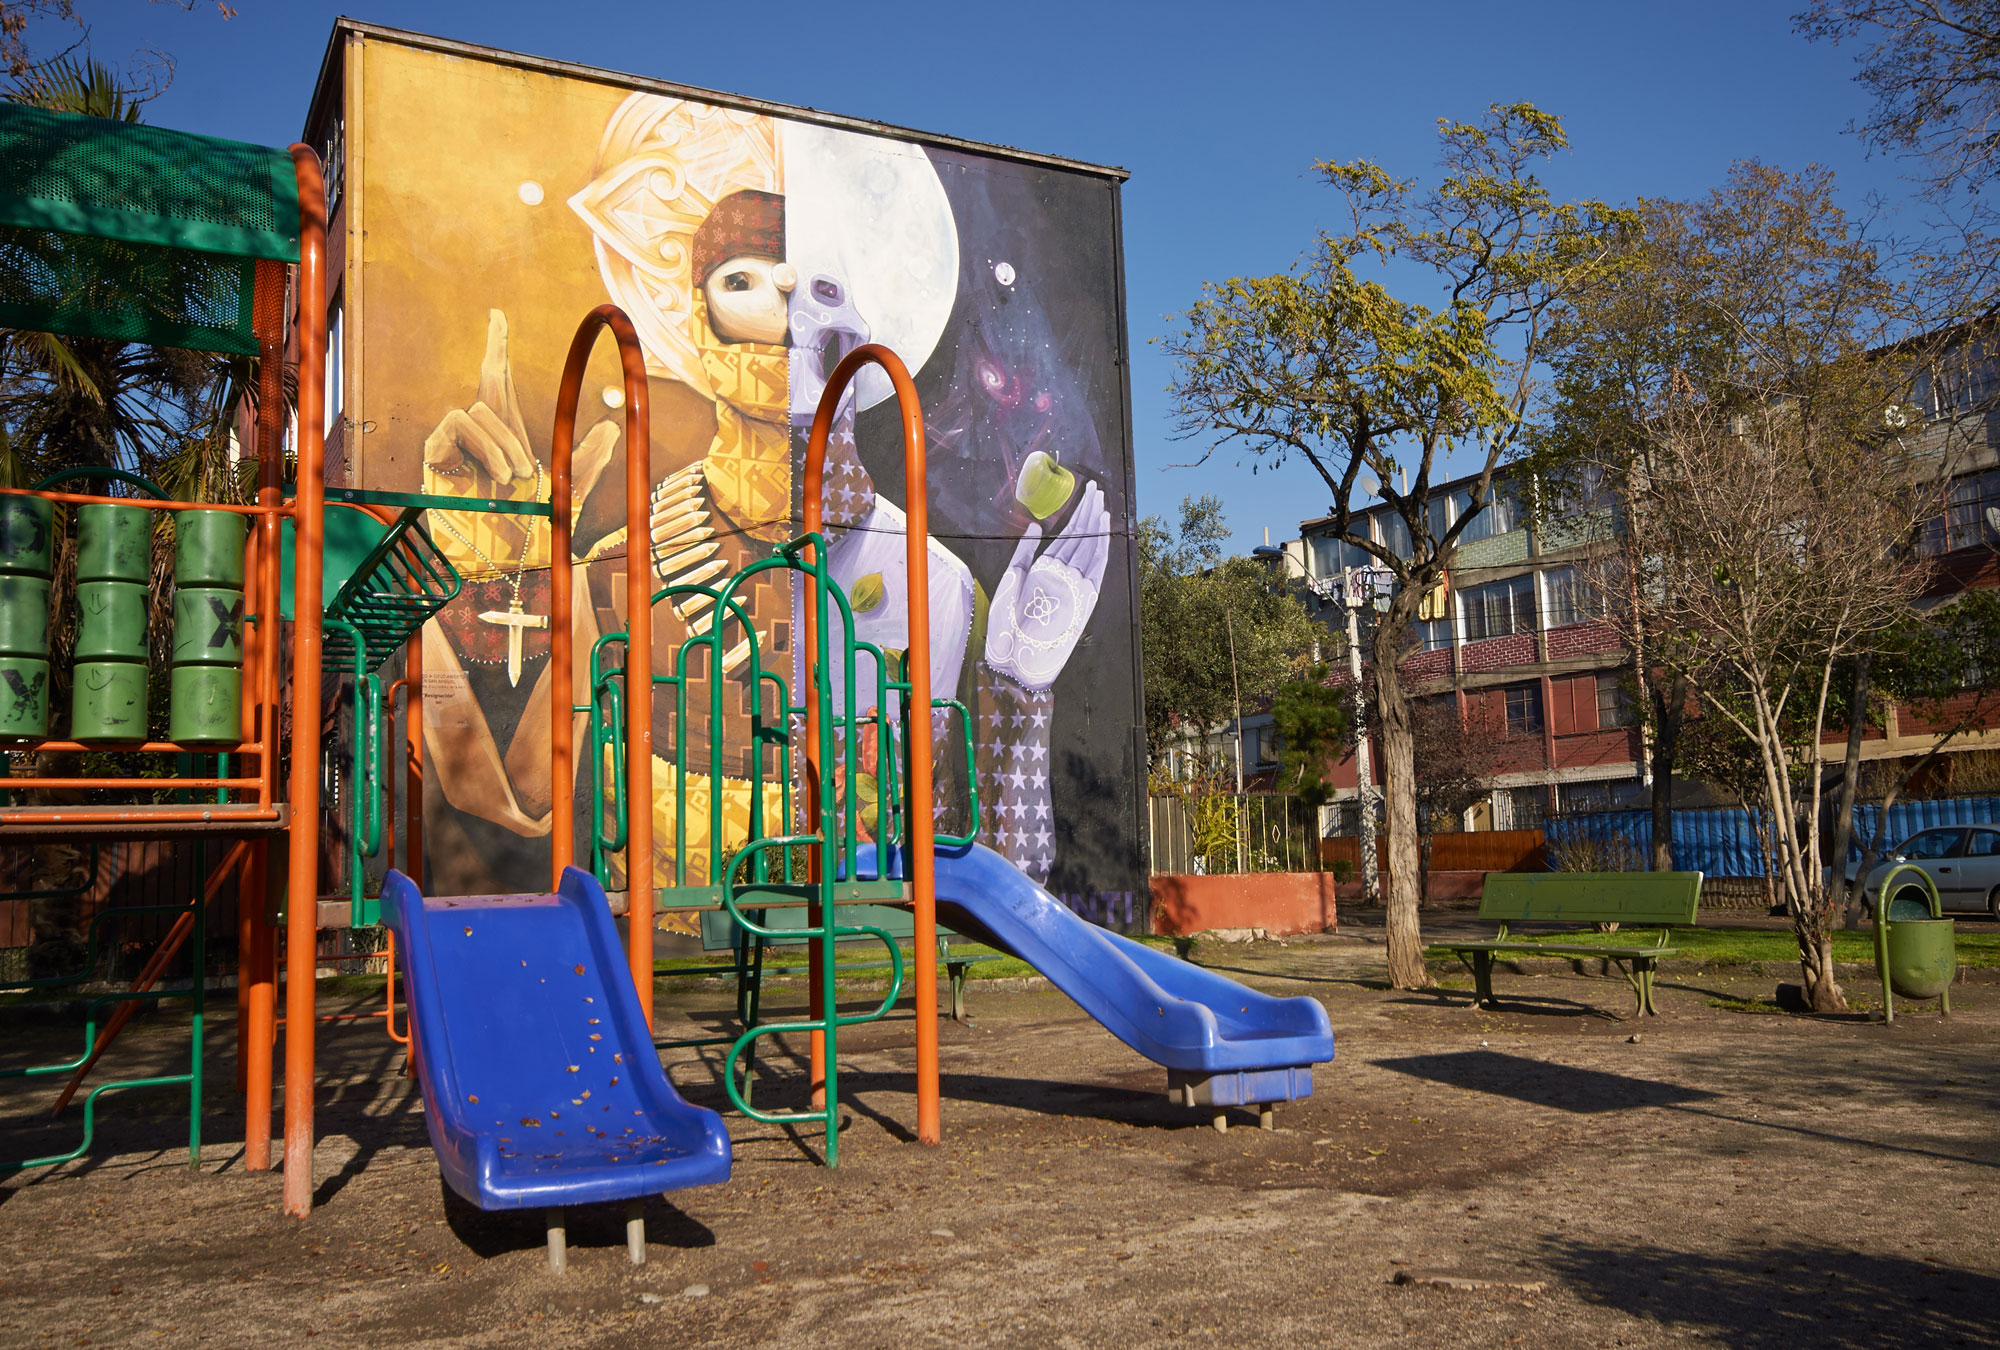 Playground in front of building with colorful mural